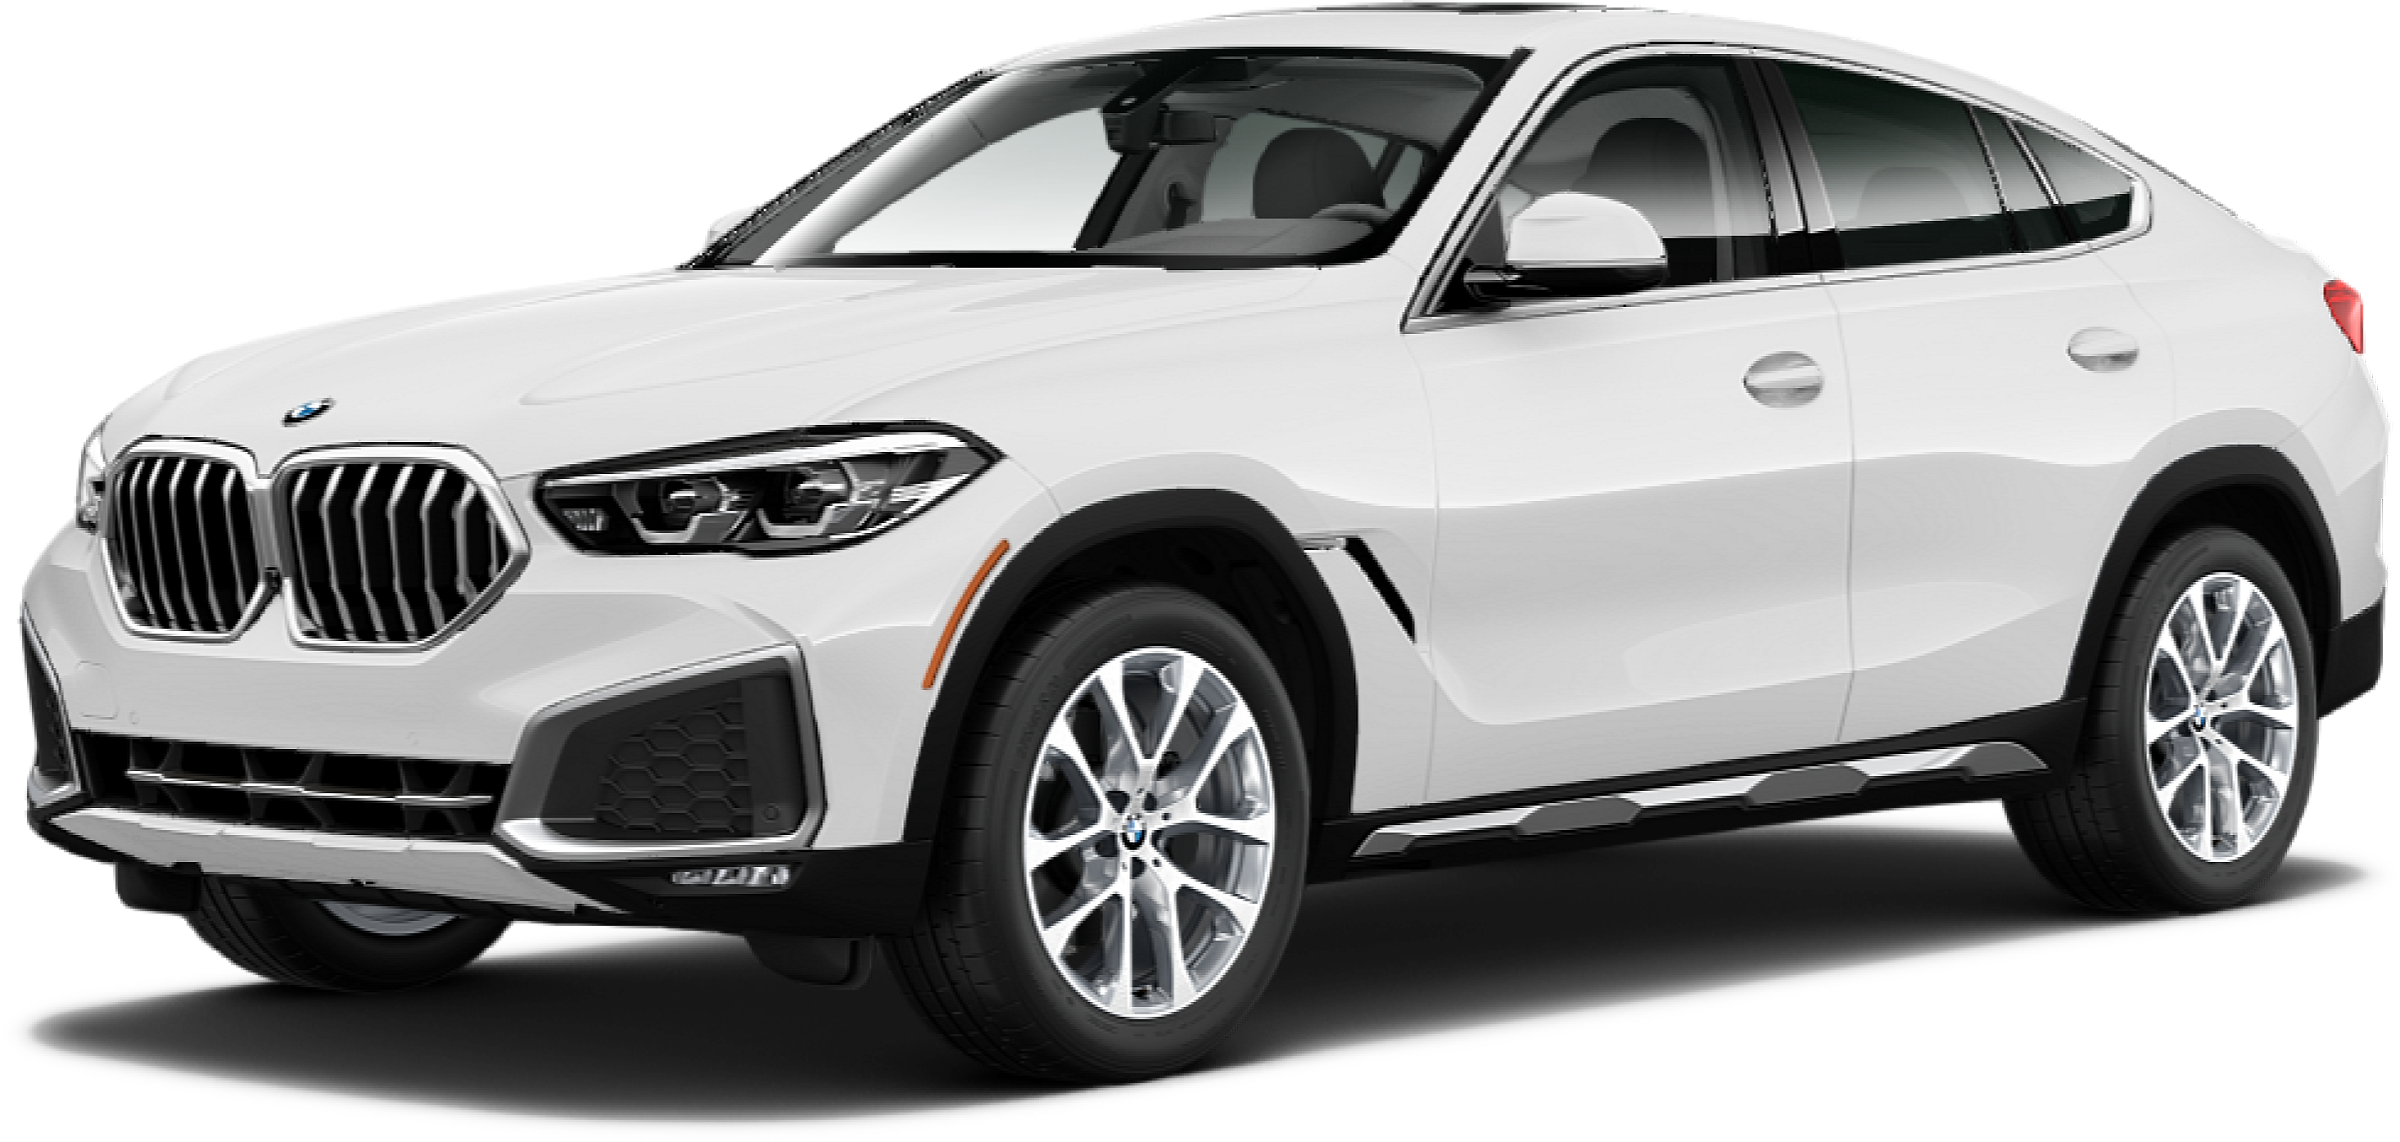 2020 Bmw X6 Incentives Specials Offers In Memphis Tn